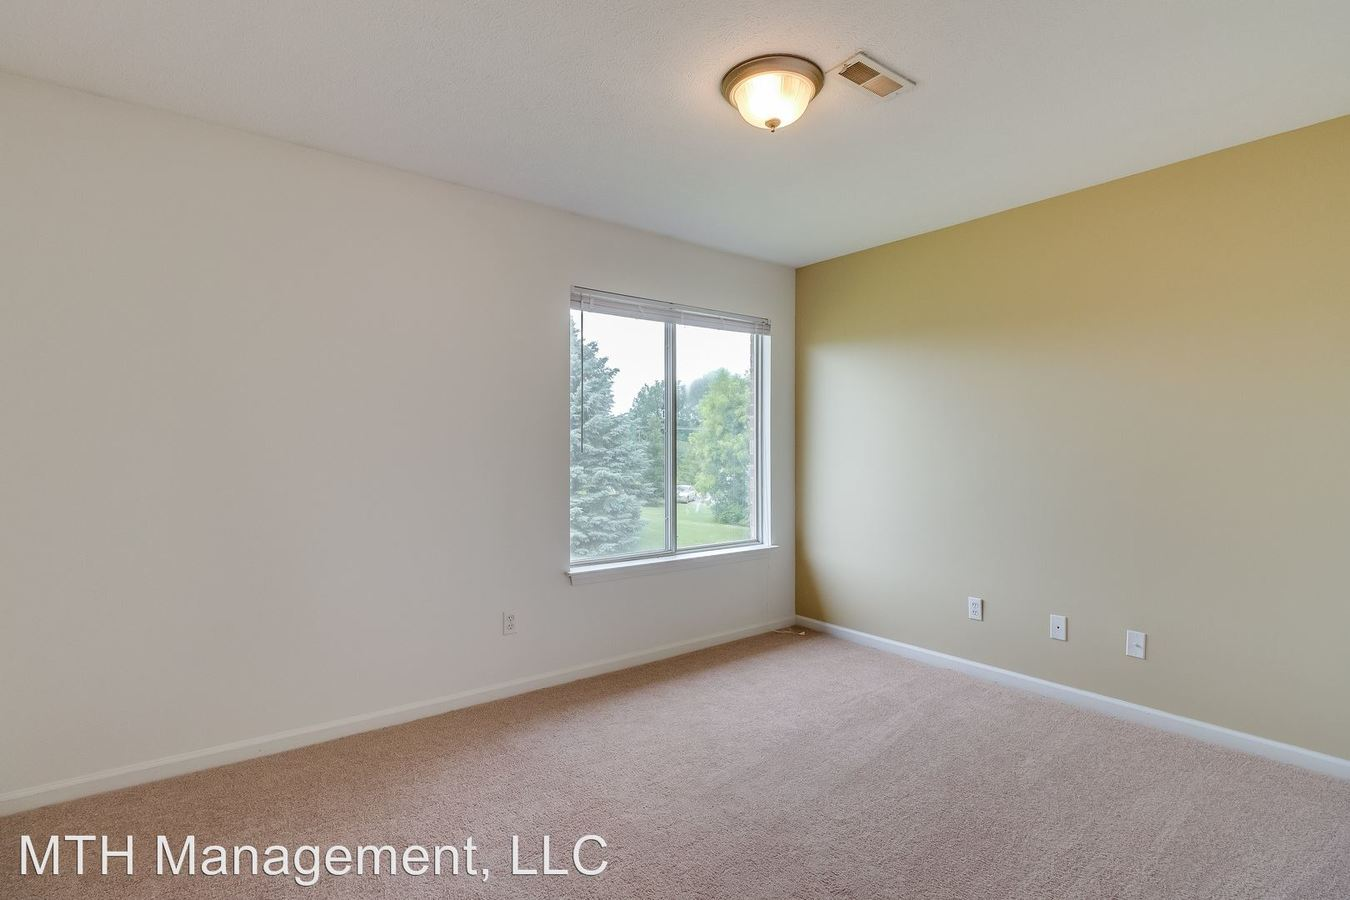 2 Bedrooms 2 Bathrooms Apartment for rent at Looking Glass Meadows in Dewitt, MI